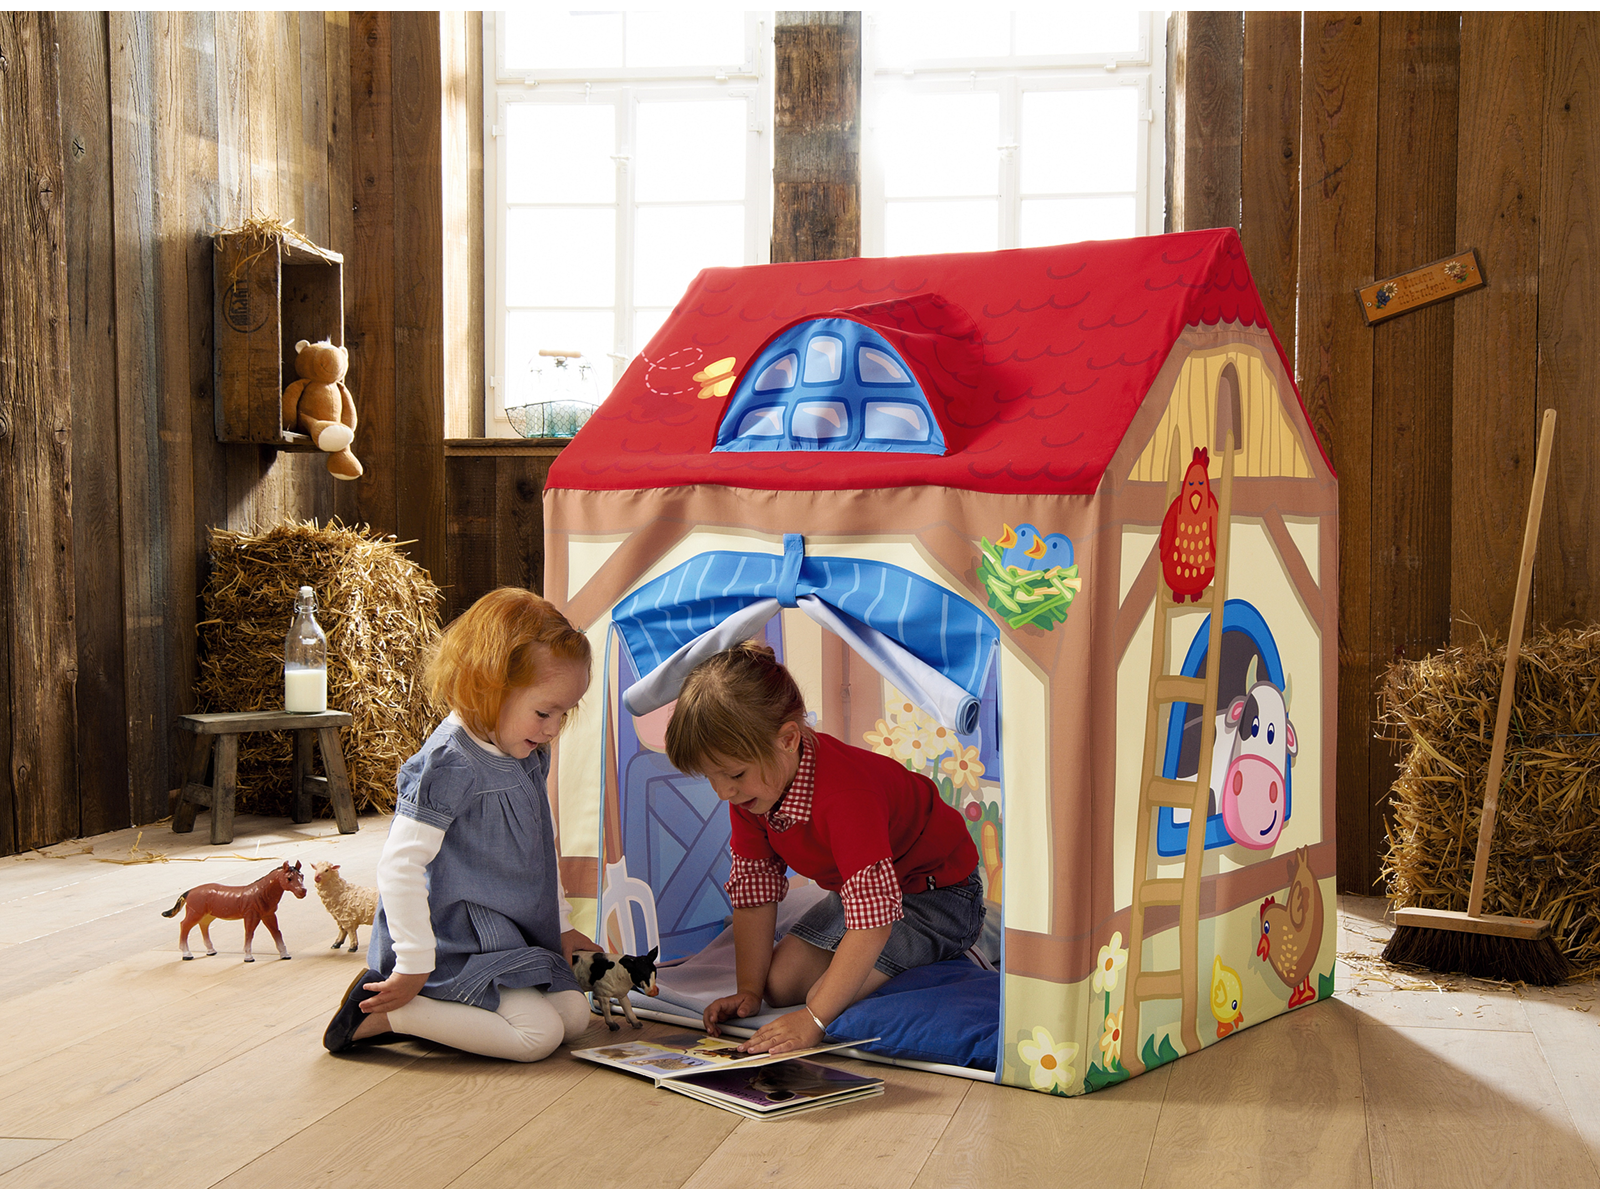 Haba Play Tent Farm - Buy Online - Playhouse of Dreams  - 7